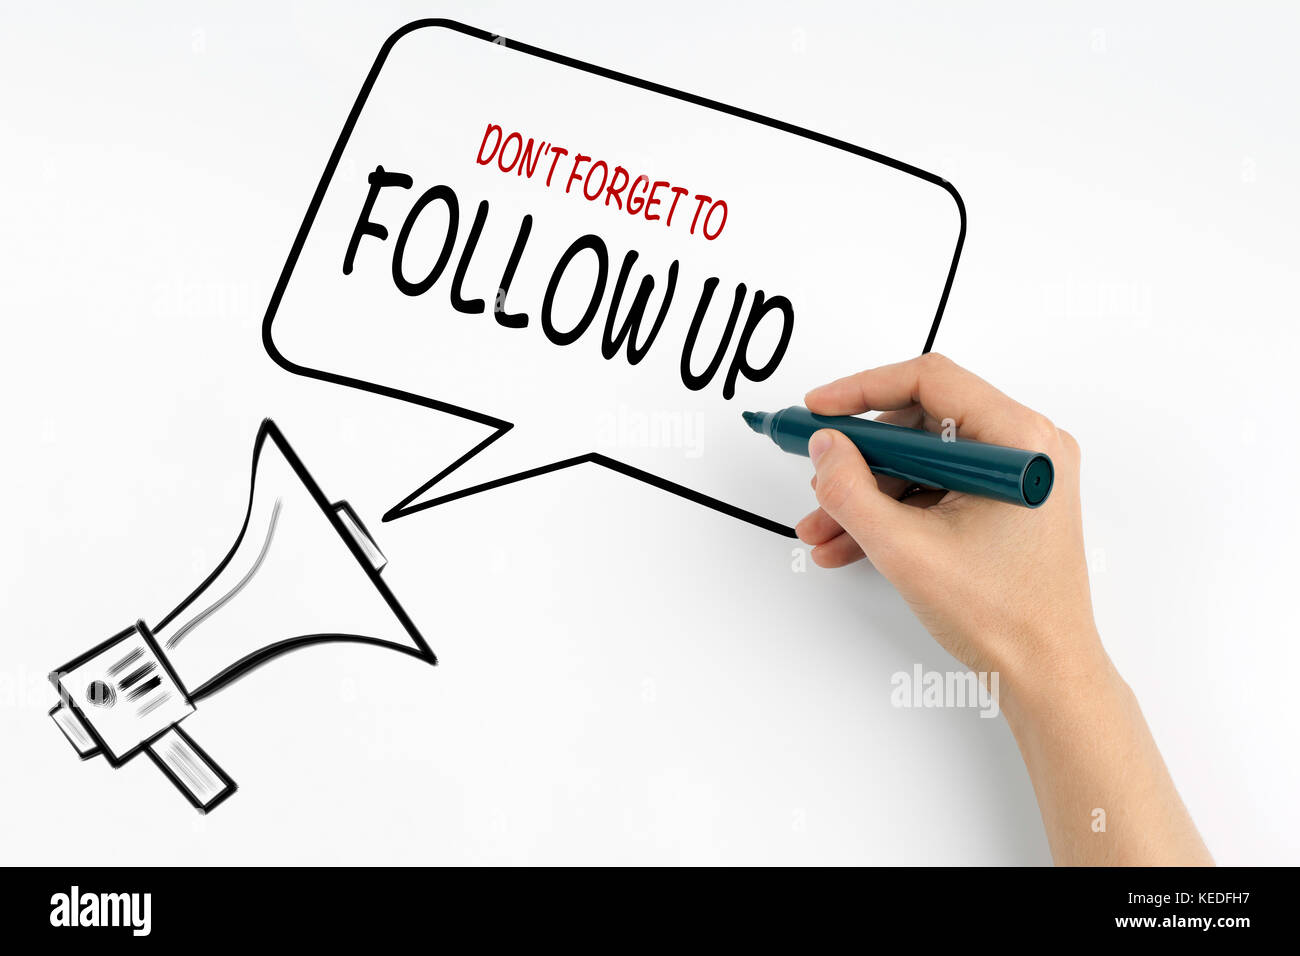 Don't Forget to Follow Up. Megaphone and text on a white background - Stock Image